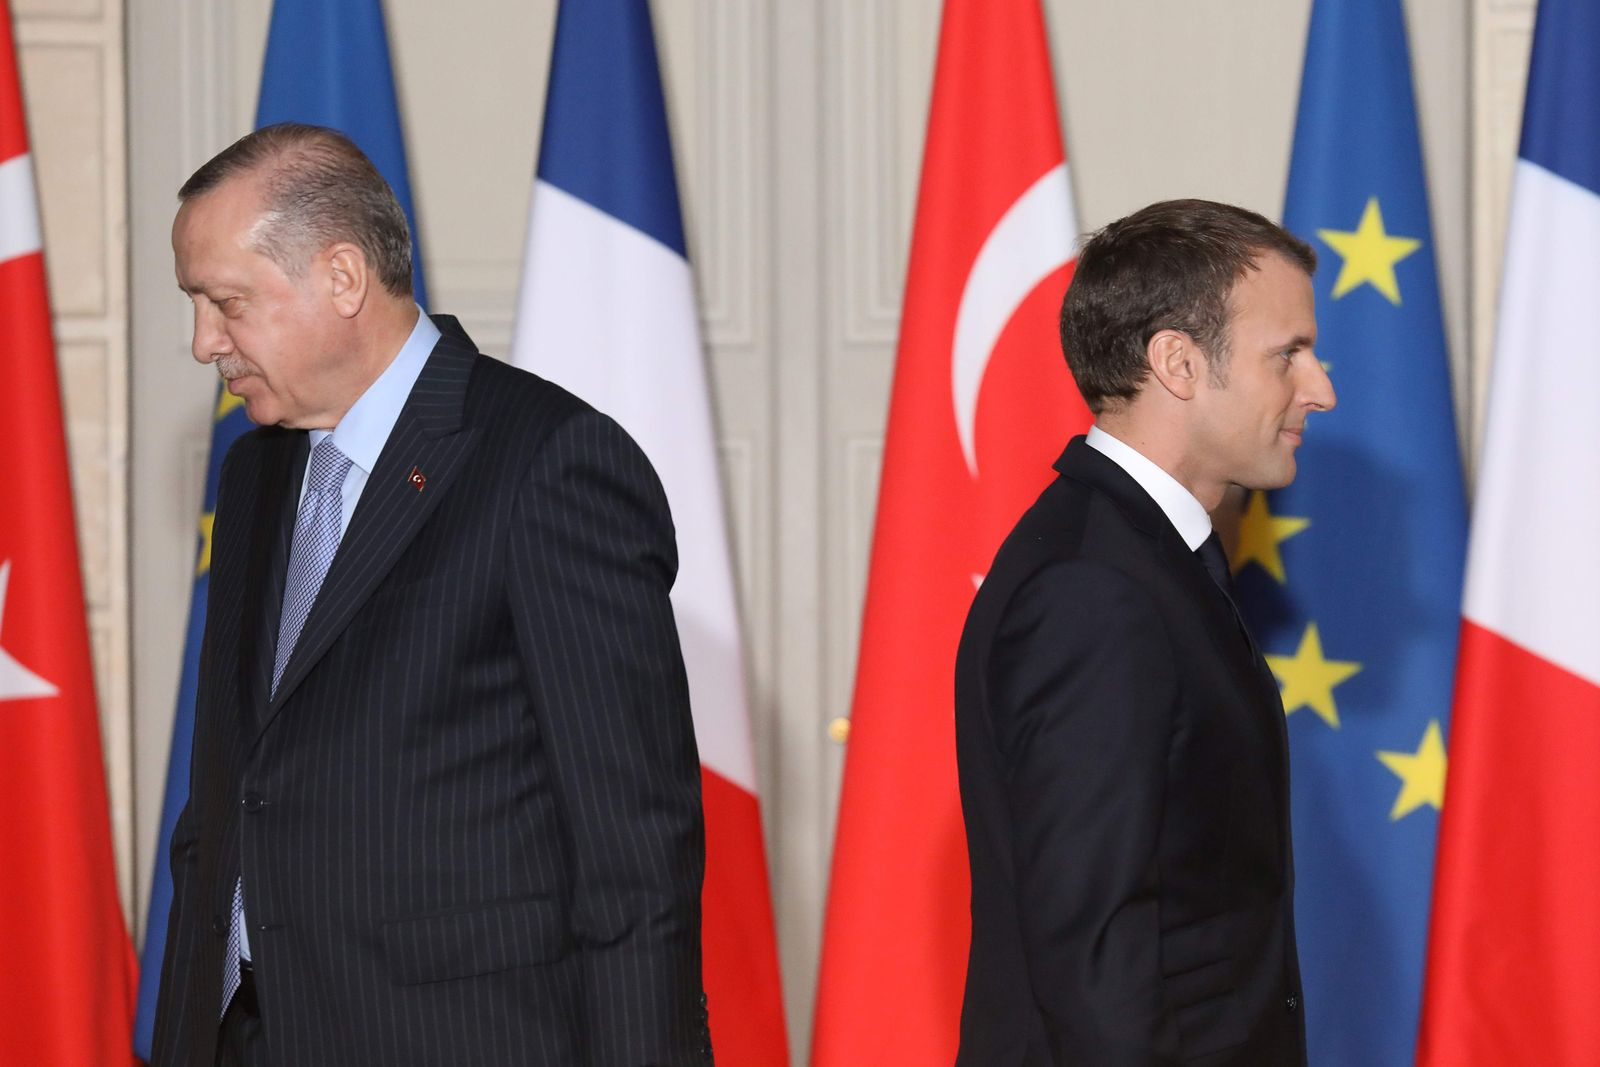 FILES-TURKEY-FRANCE-RELIGION-POLITICS